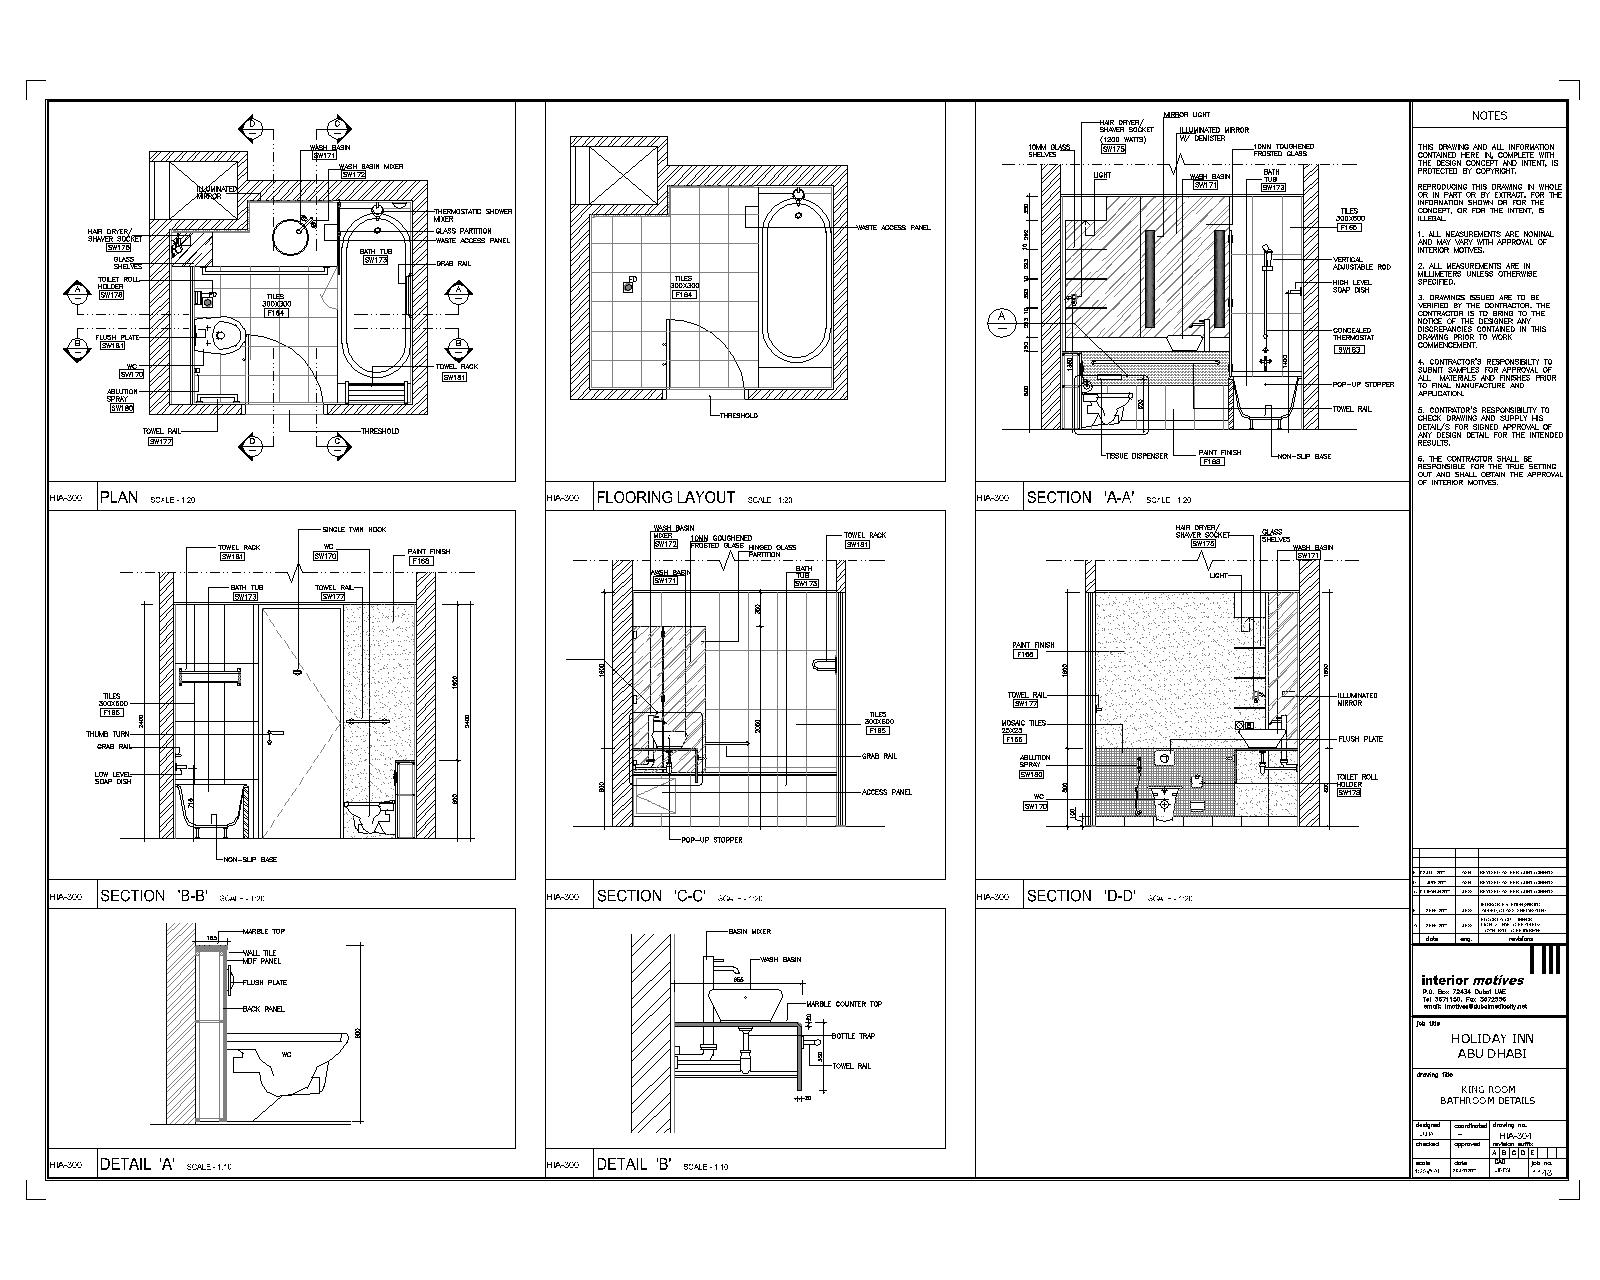 Autocad drawings detail by ashik ahammed at for Online autocad drawing